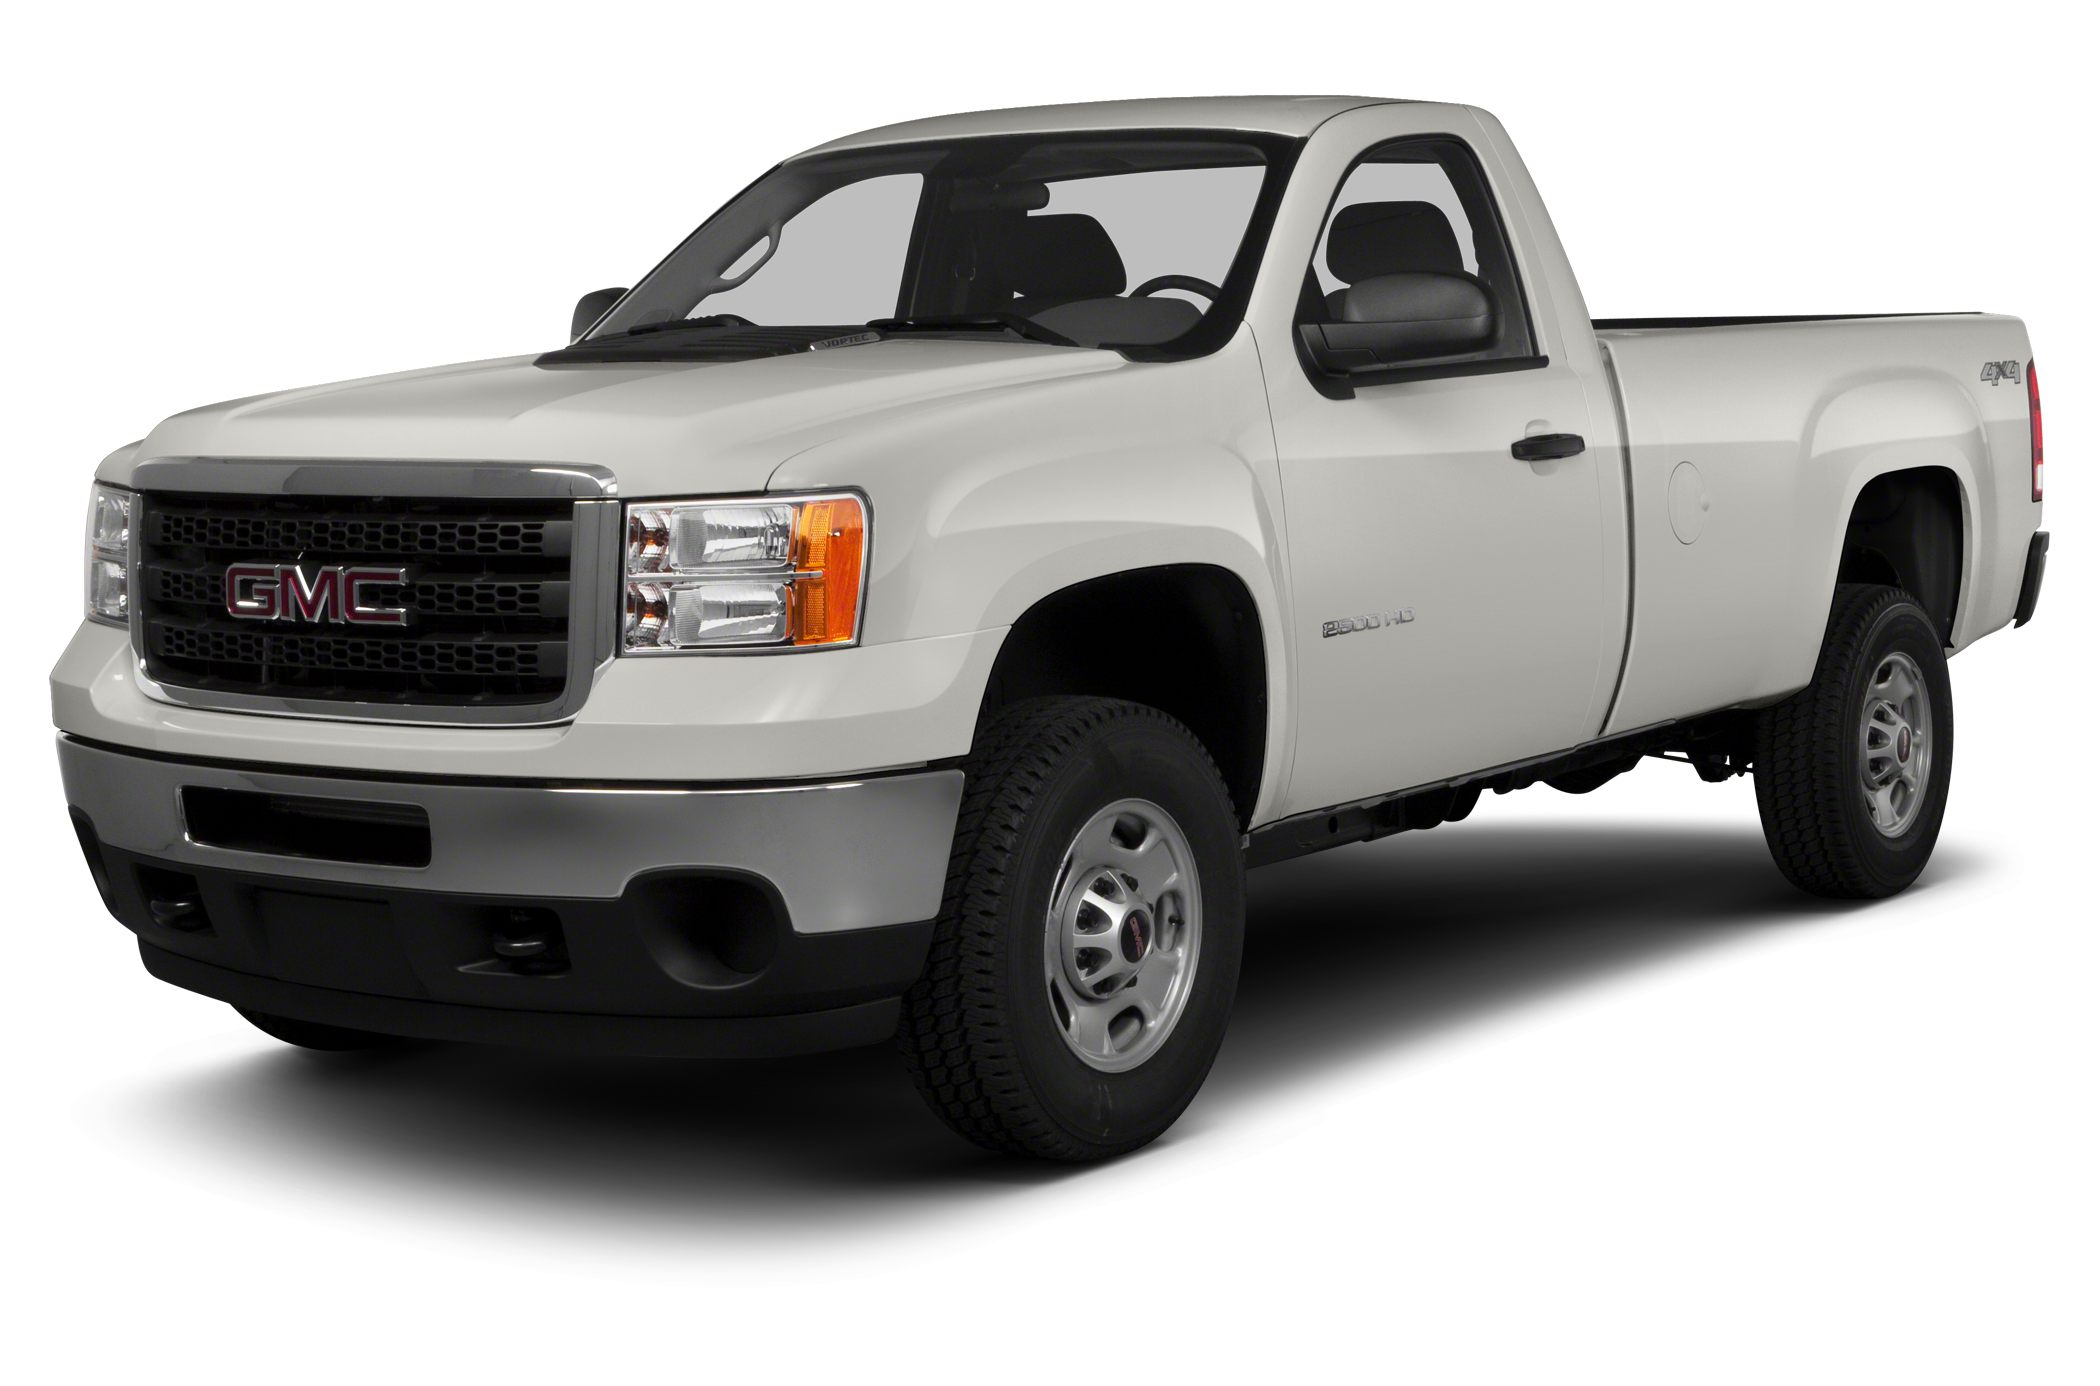 2014 GMC Sierra 2500 SLE Crew Cab Pickup for sale in Beckley for $57,255 with 0 miles.